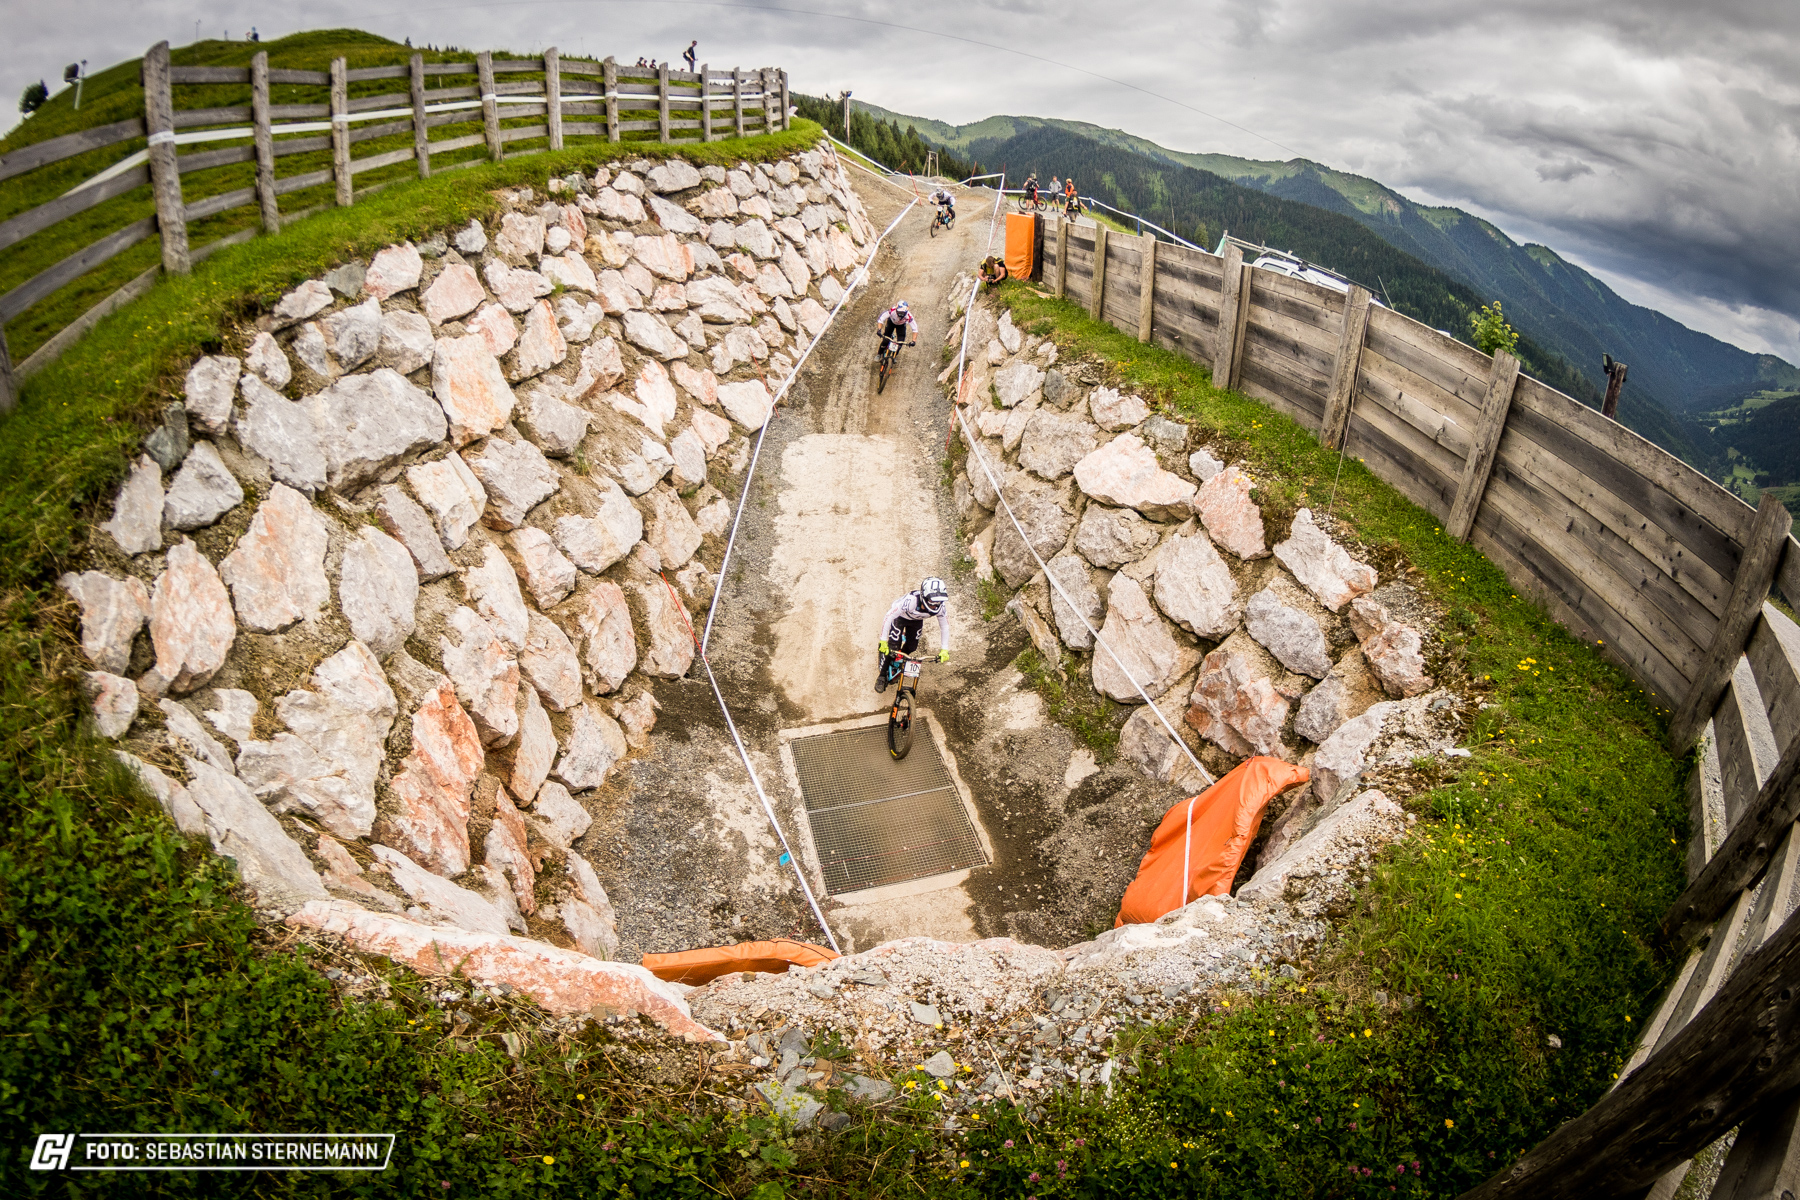 Friday Leogang 351